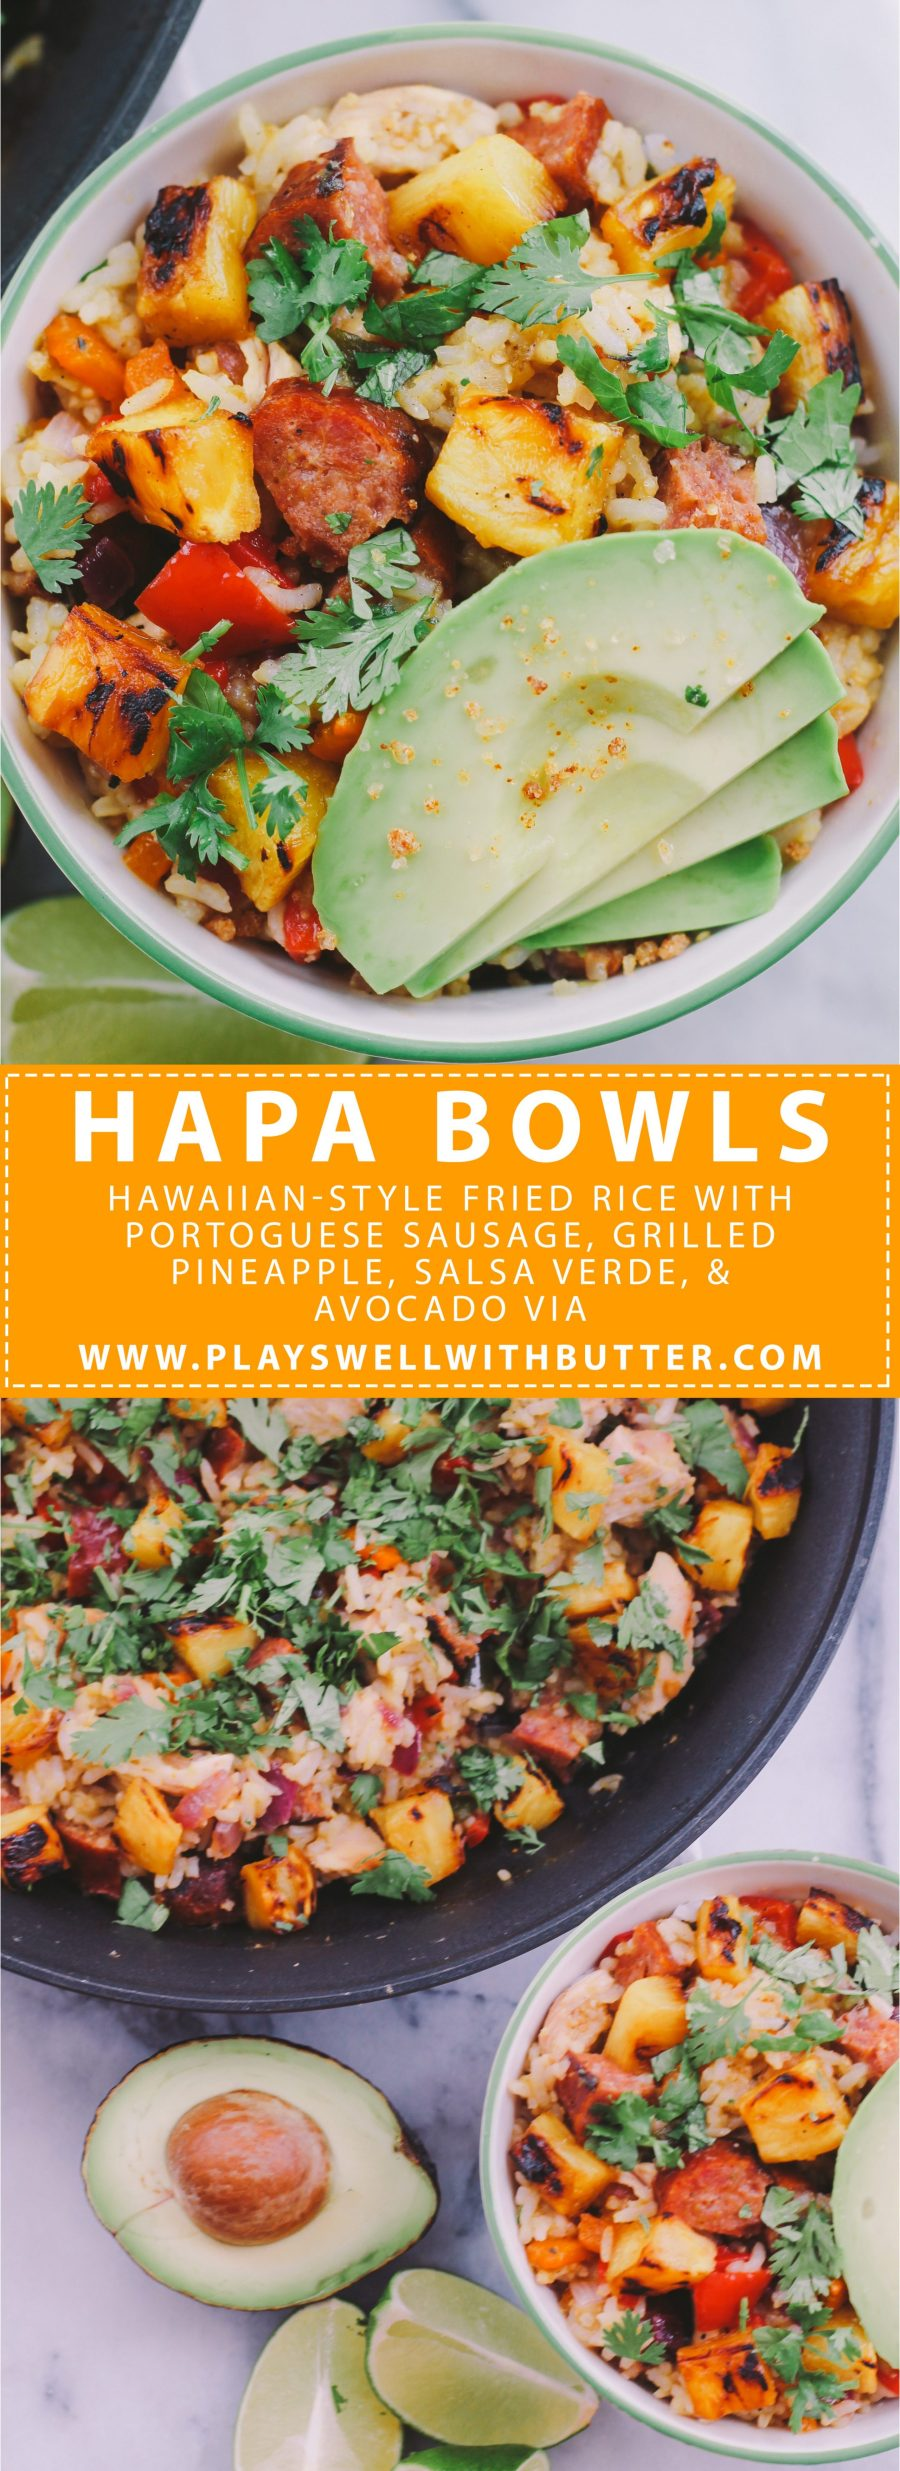 hapa fried rice with grilled pineapple, portuguese sausage & salsa verde via plays well with butter | a delicious hawaiian-inspired fried rice packed with grilled chicken, pineapple, jalapeños & spicy portuguese sausage that all come together to create the perfect balance of rich, smoky, sweet & spicy bowl. top this hapa fried rice off with a squeeze of lime & some sliced avocado & you'll for sure be hooked on this quick, flavorful for the rest of summer.